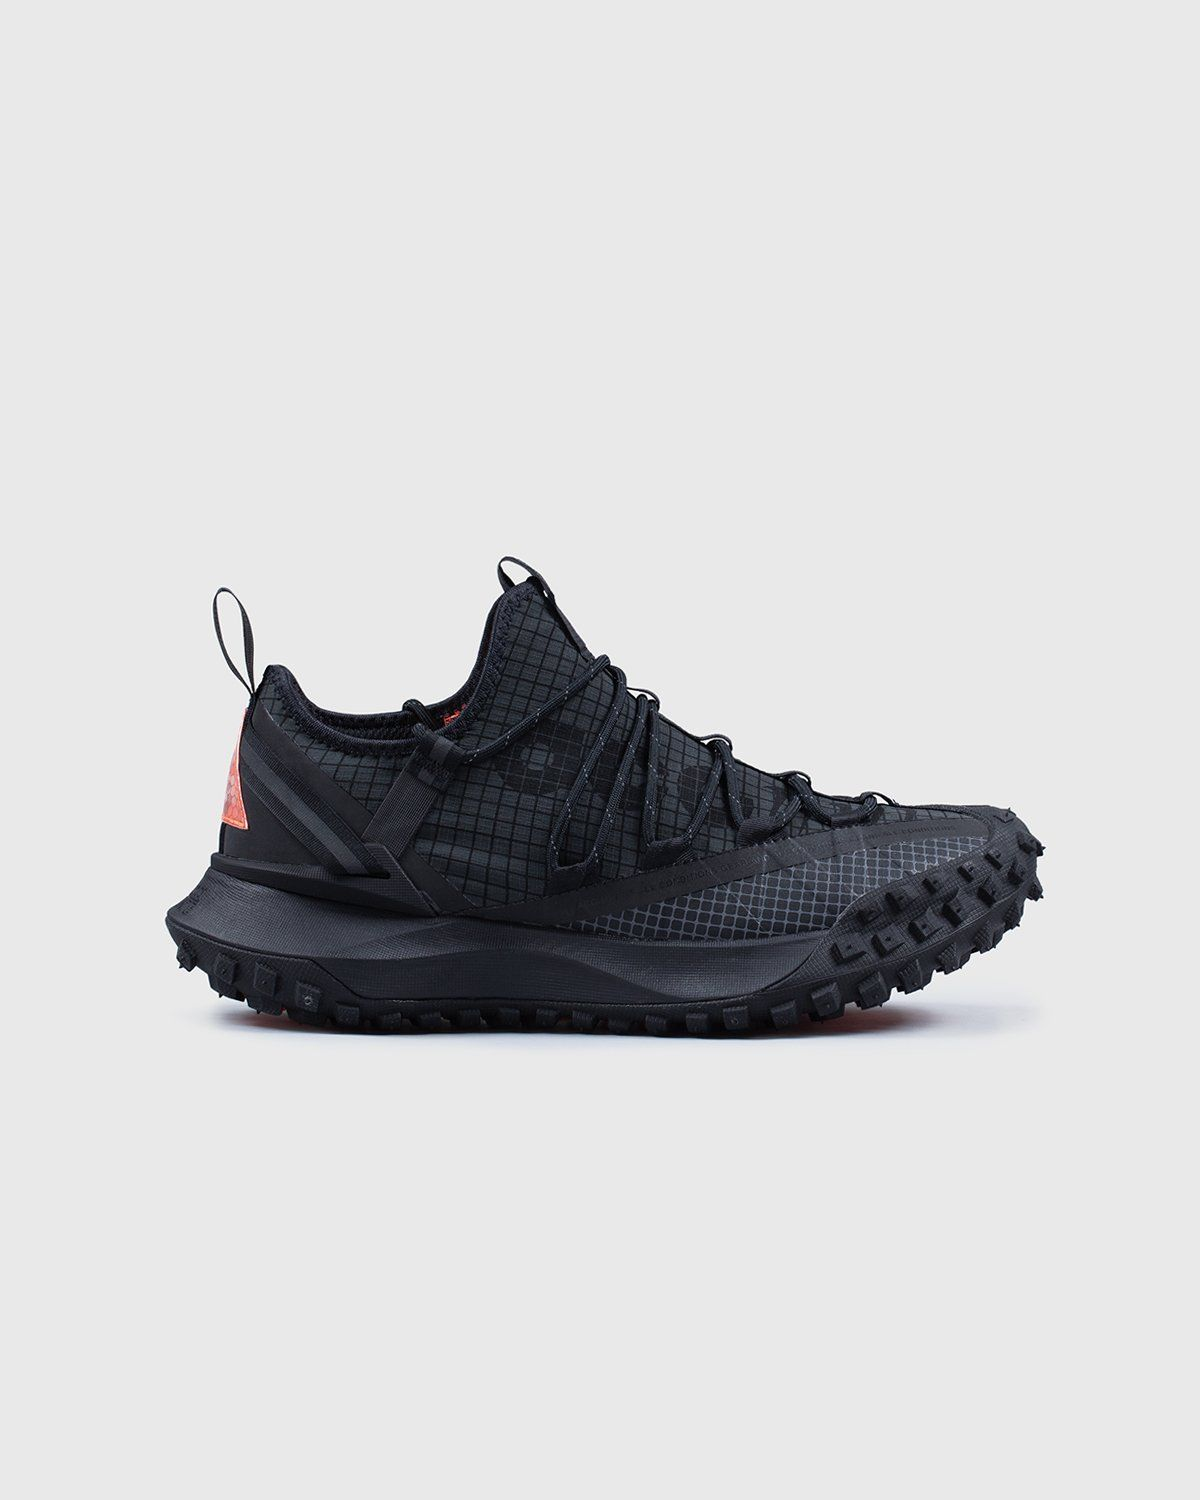 Nike ACG — Mountain Fly Low Anthracite - Image 1